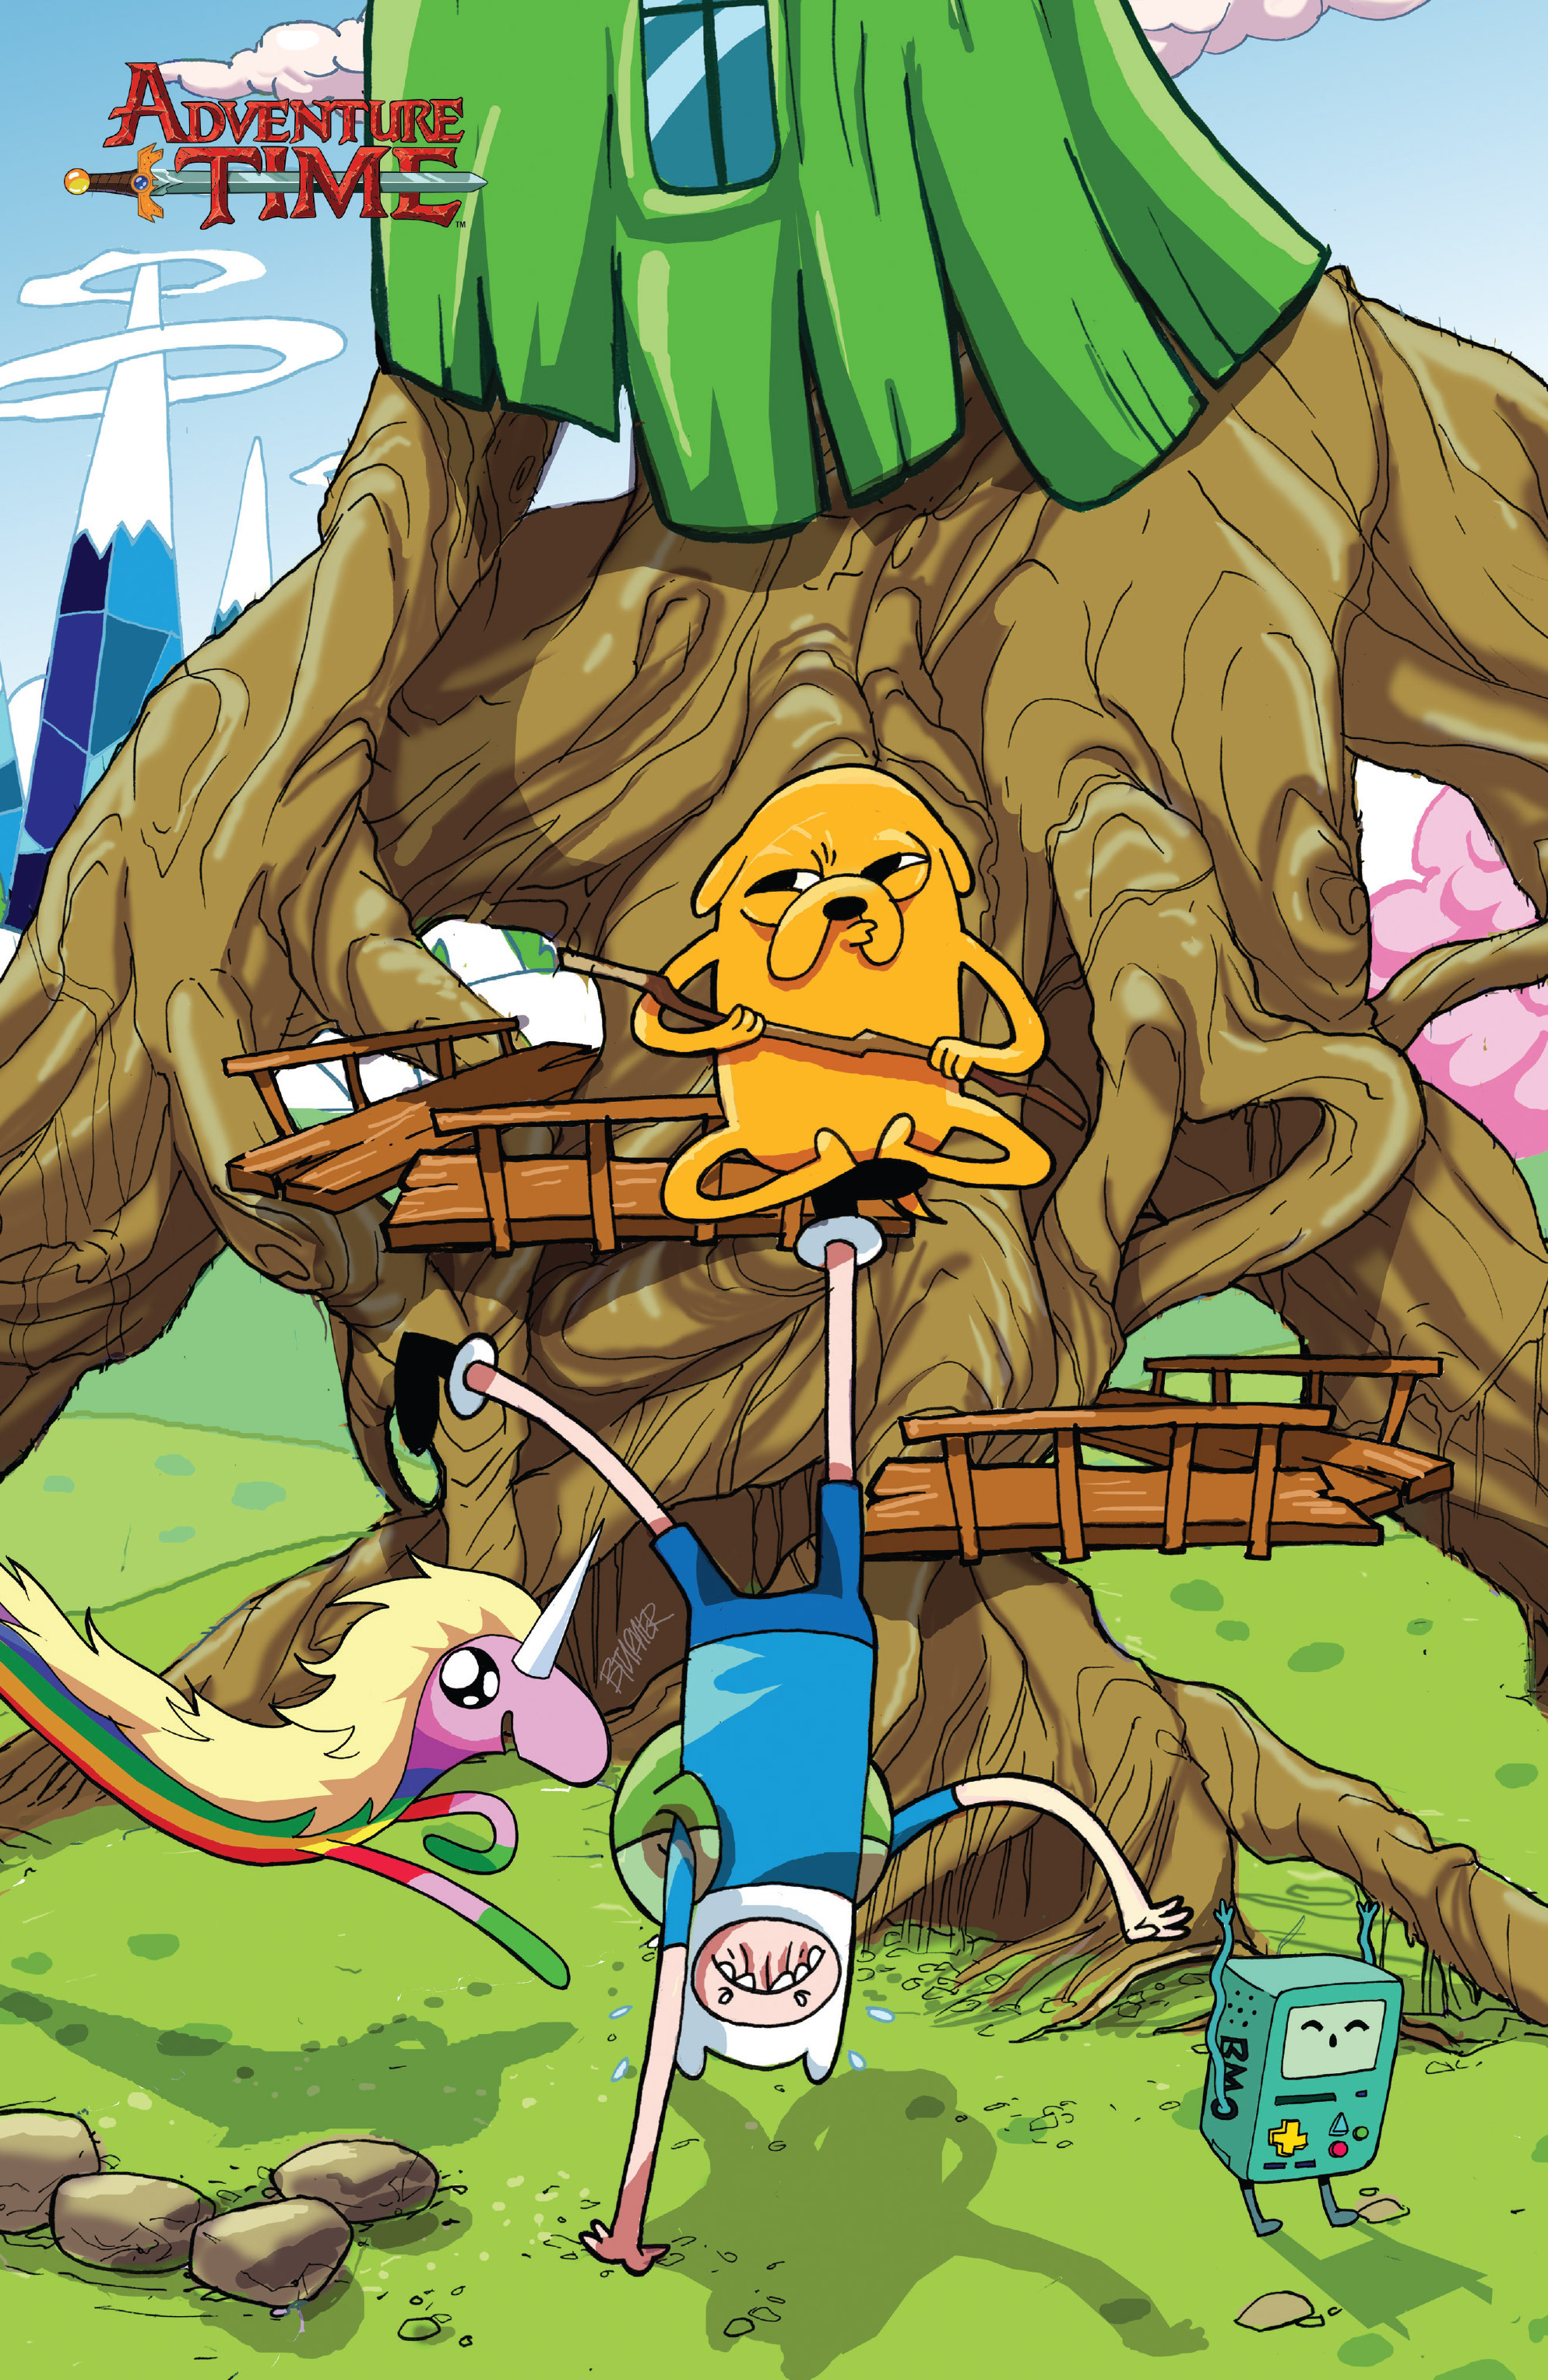 Read online Adventure Time comic -  Issue #23 - 4